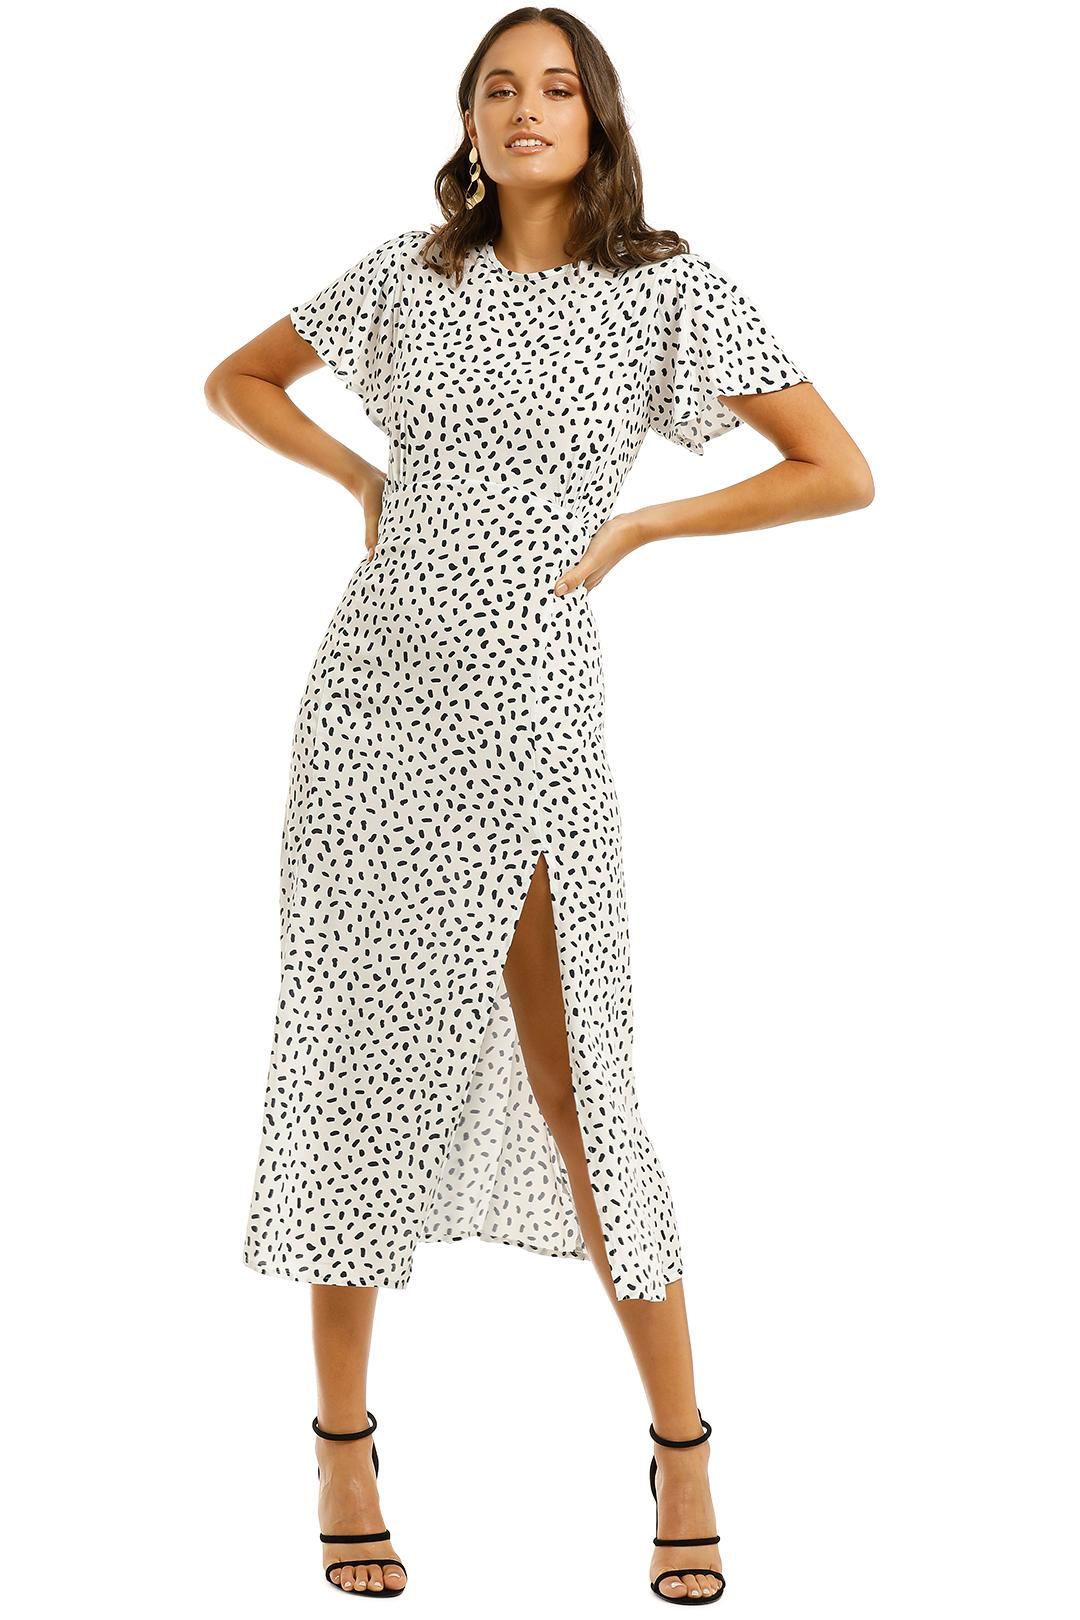 Paso Dress Polka Stroke Ink